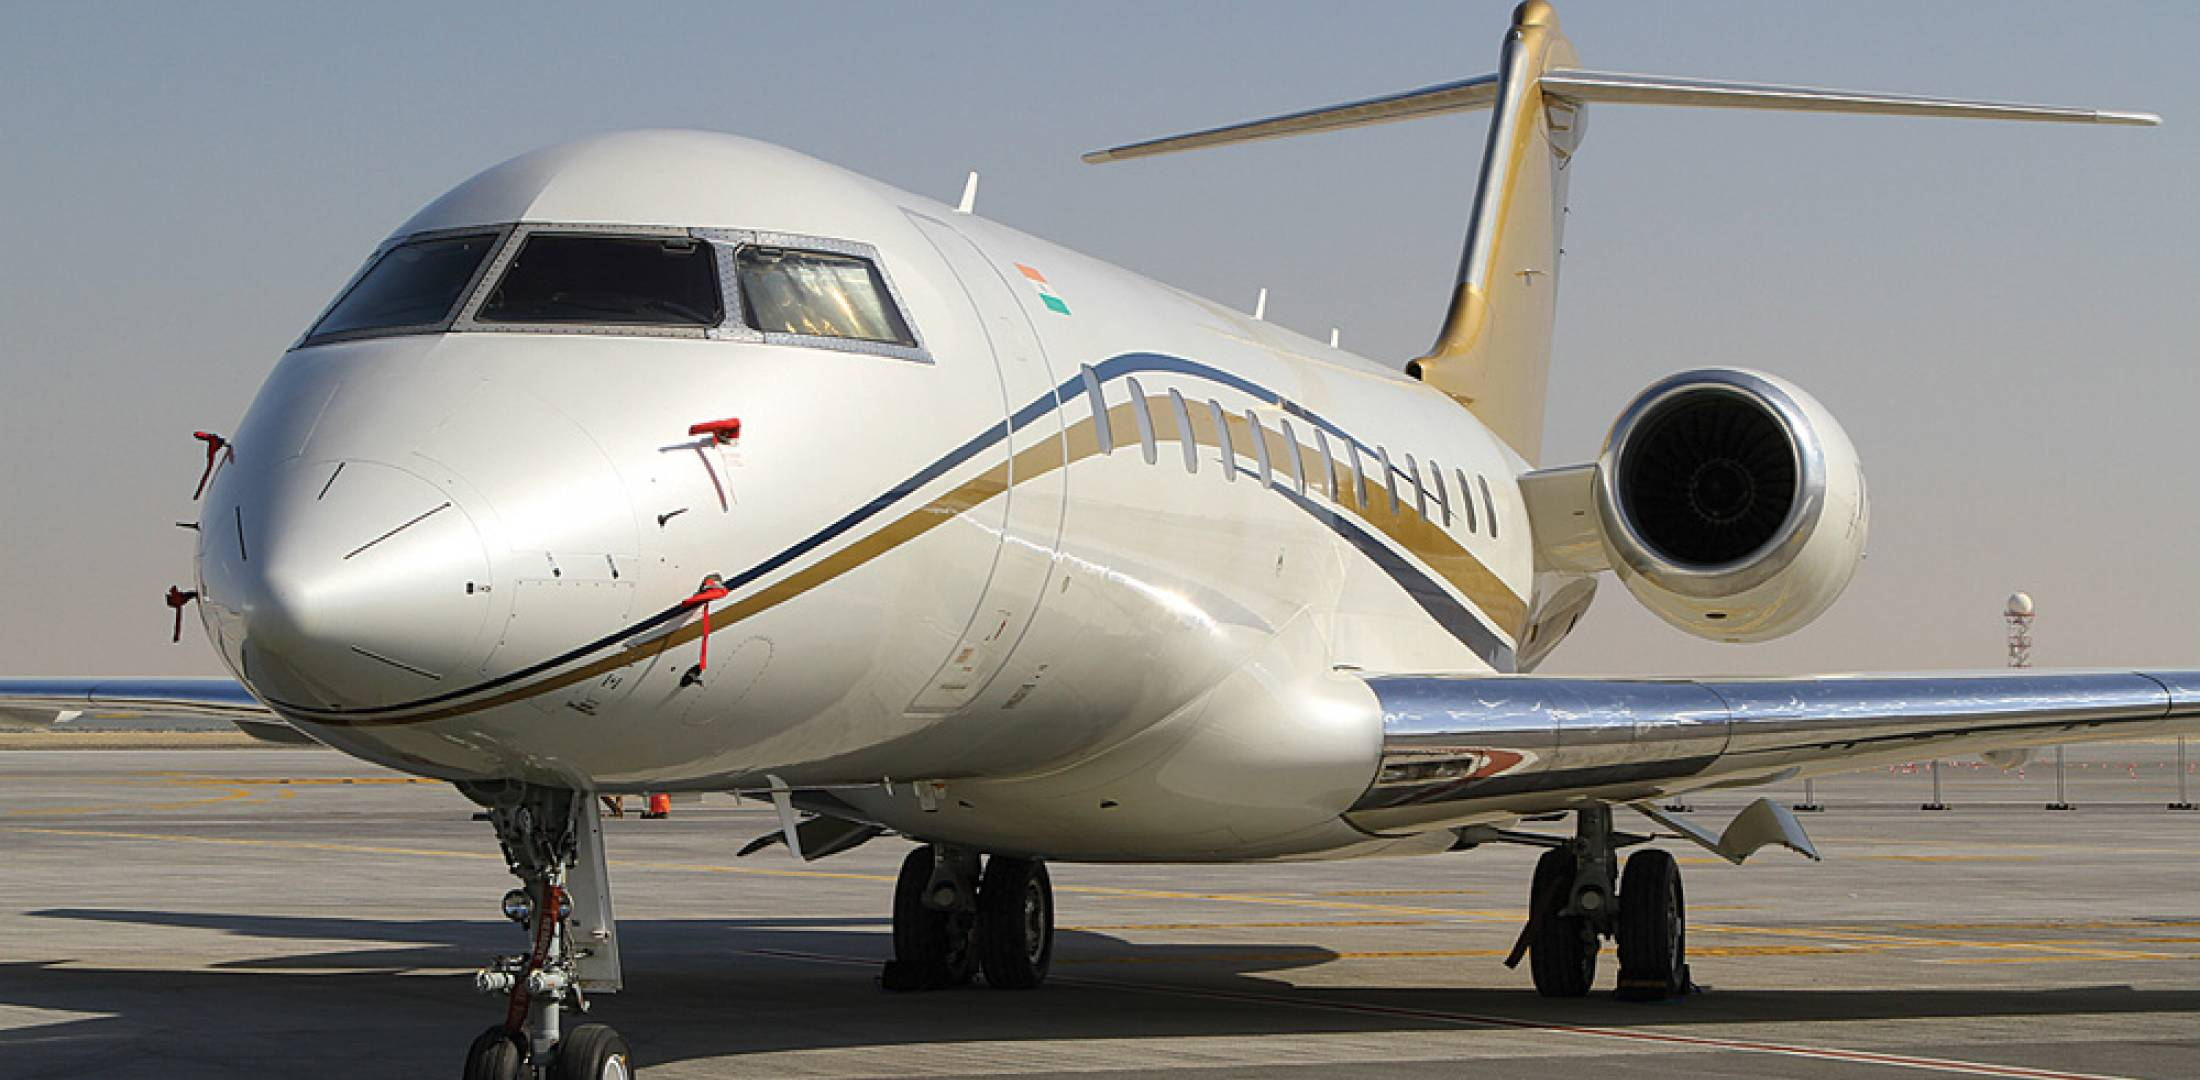 Bombardier can support its family of aircraft, including this Global Express, supplying parts from its new depot in the Jebel Ali Free Trade Zone to operators in the Middle East, Africa and Europe.